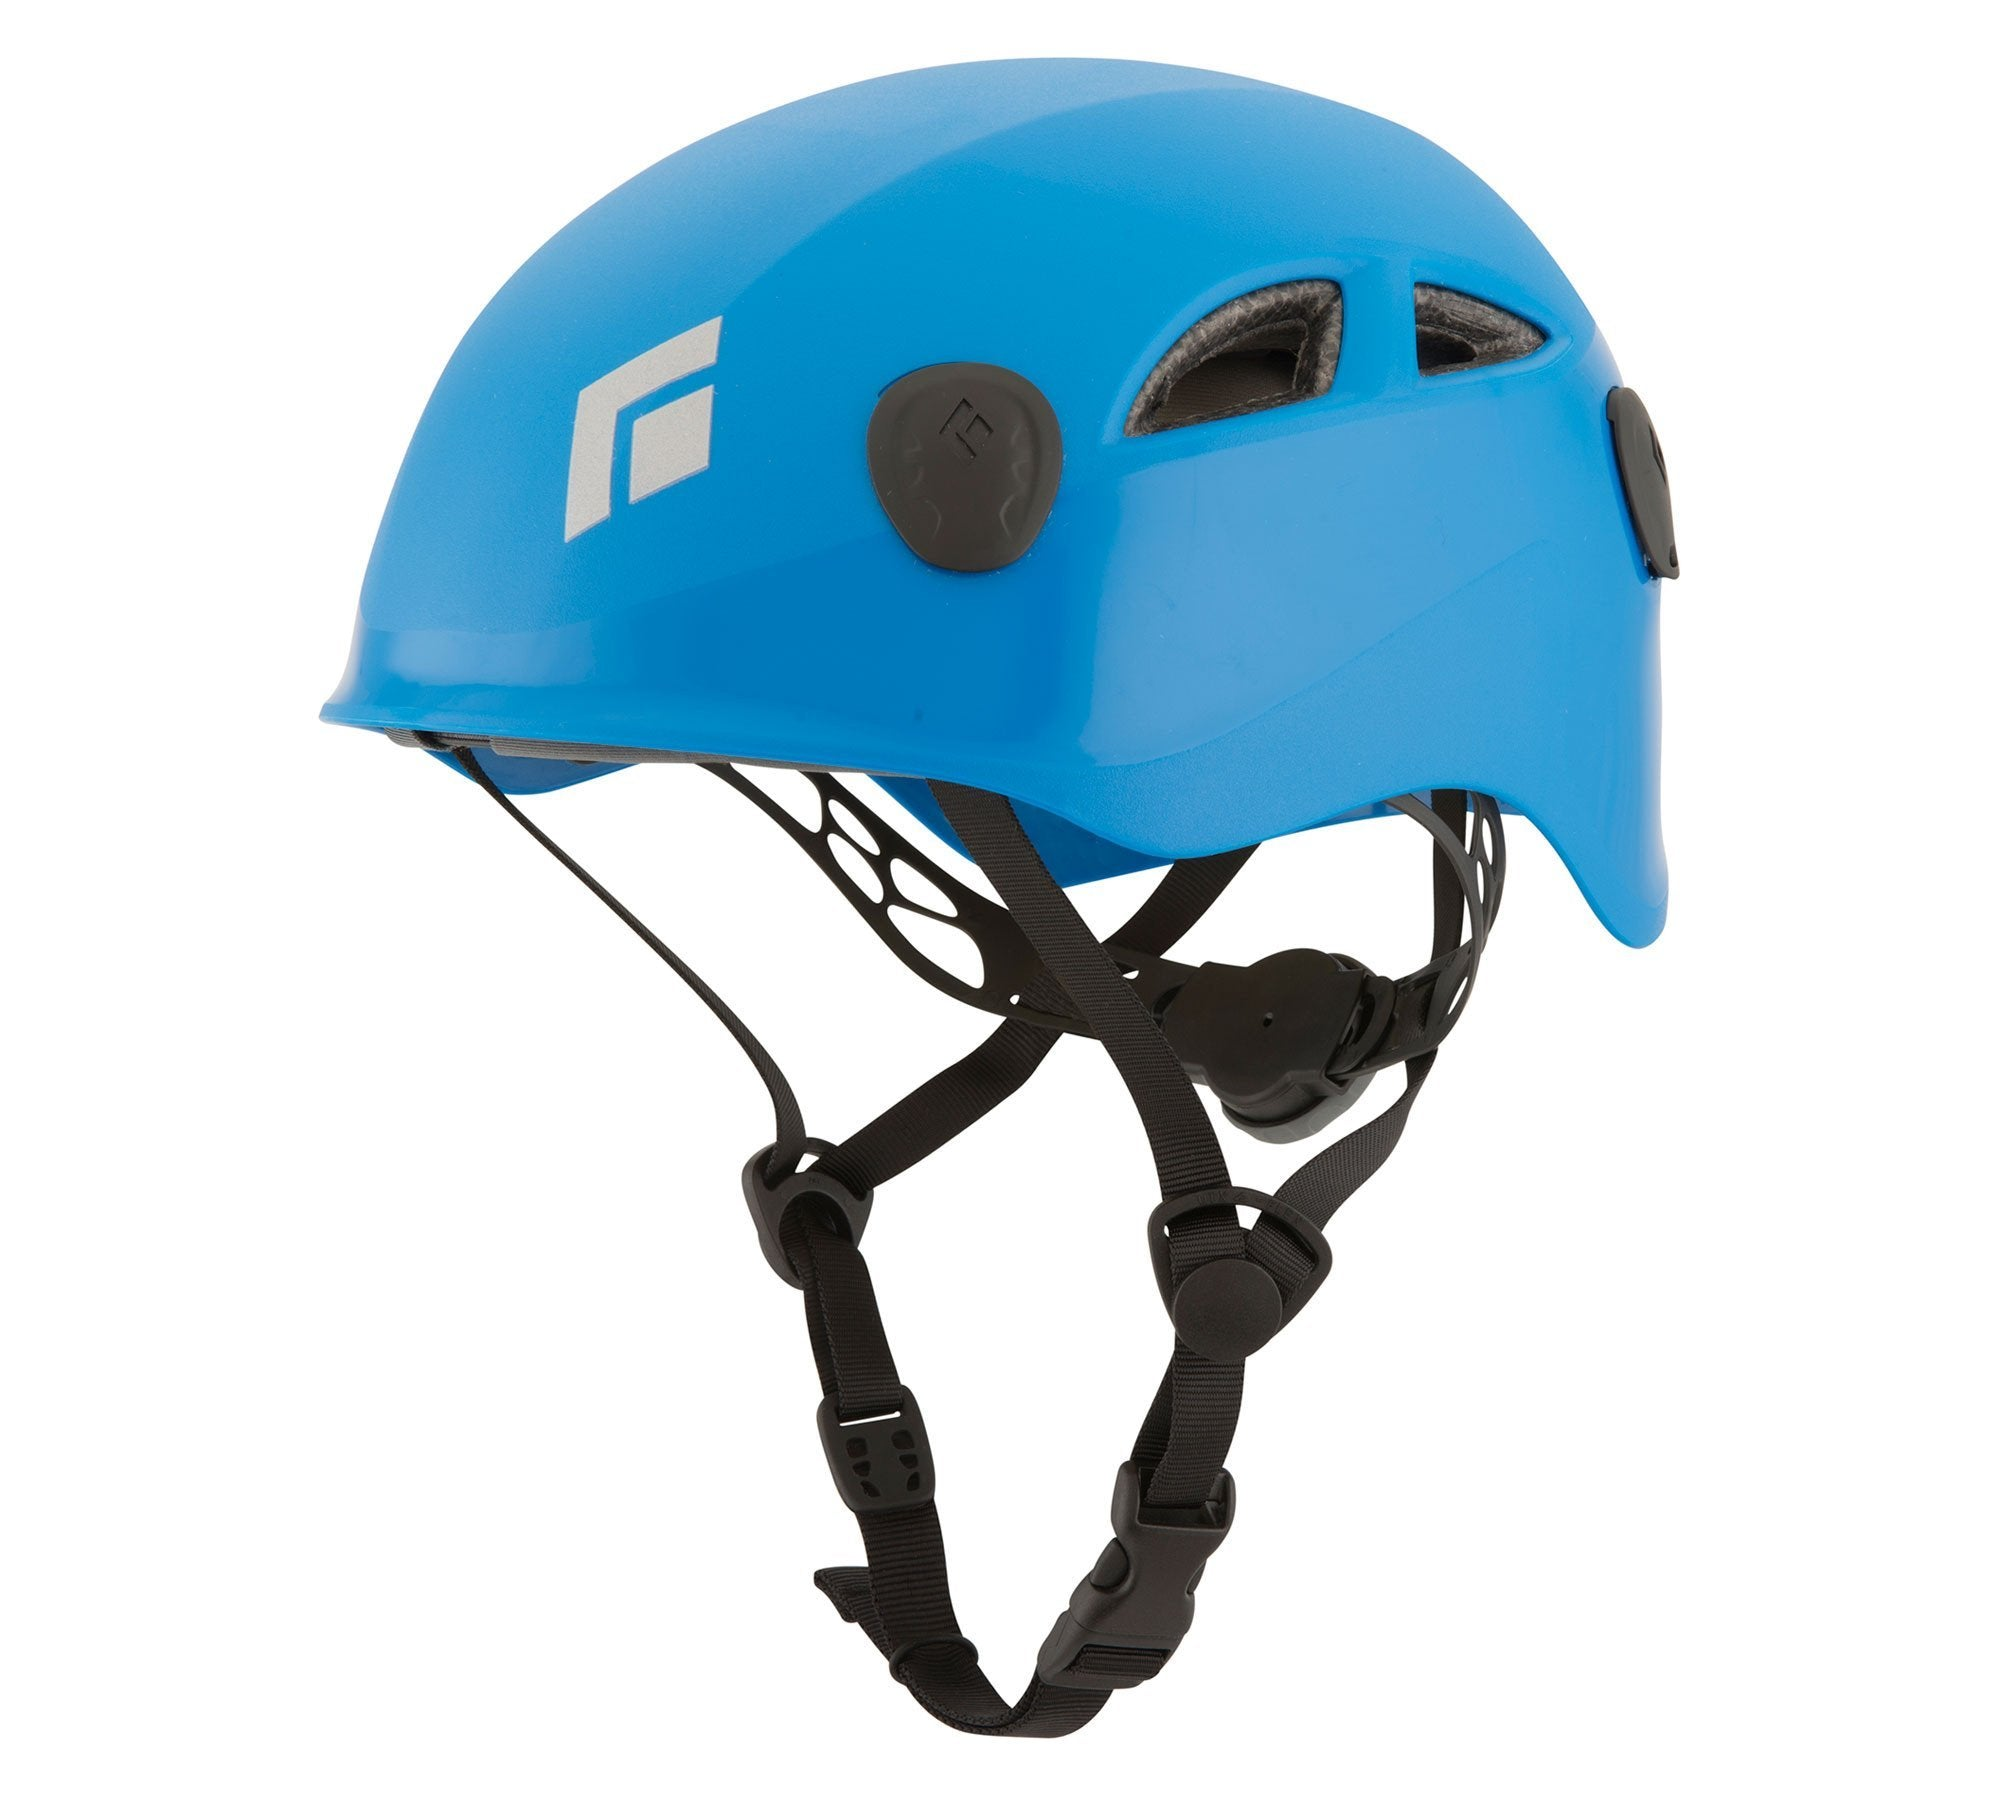 Black Diamond Half Dome Helmet, in Ultra blue colour